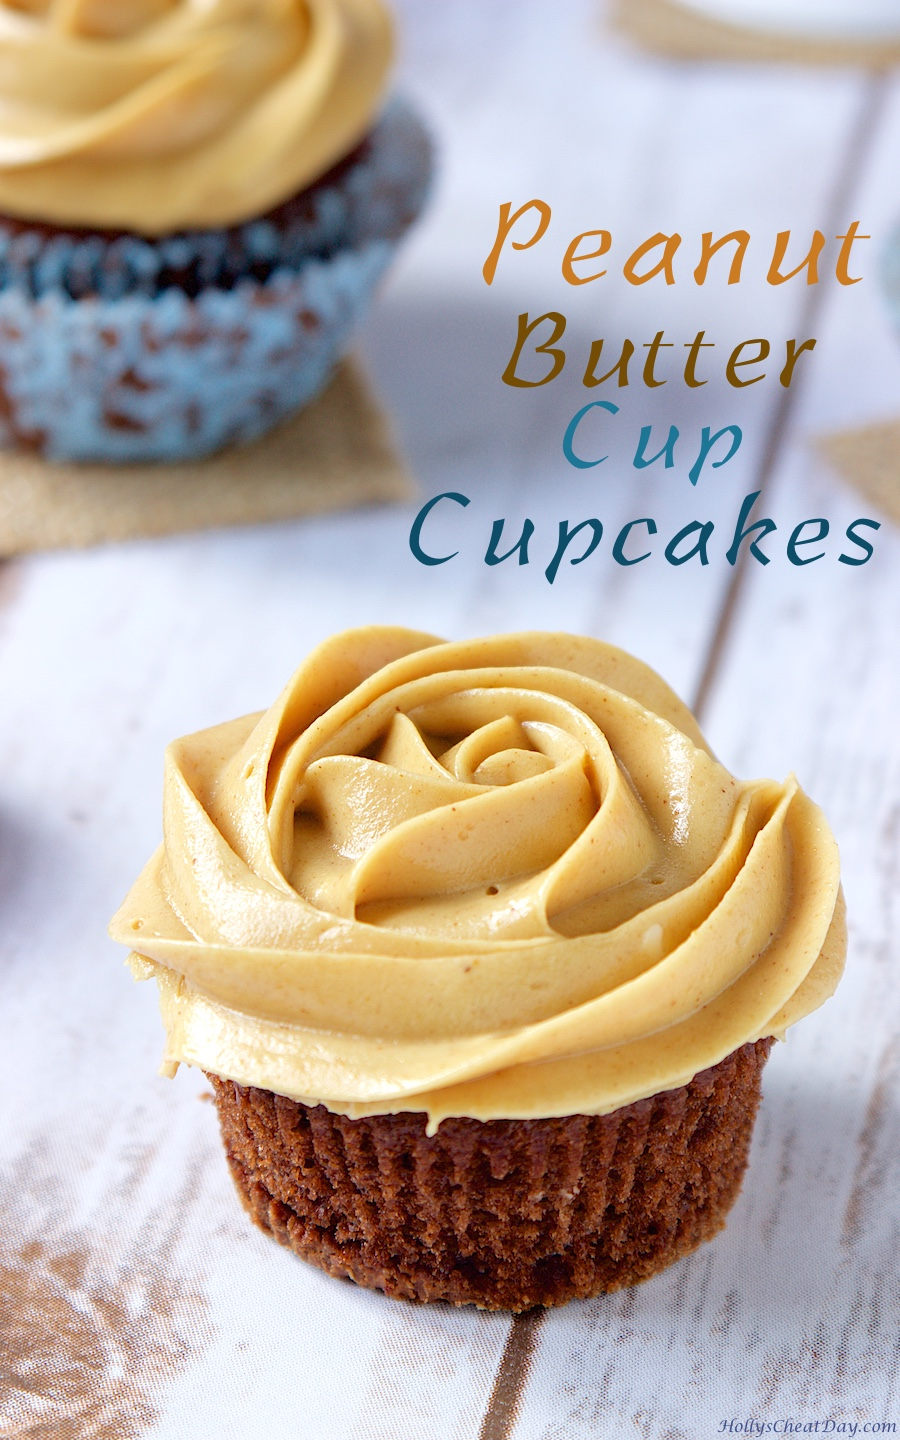 Peanut Butter Cup Cupcakes - HOLLY'S CHEAT DAY